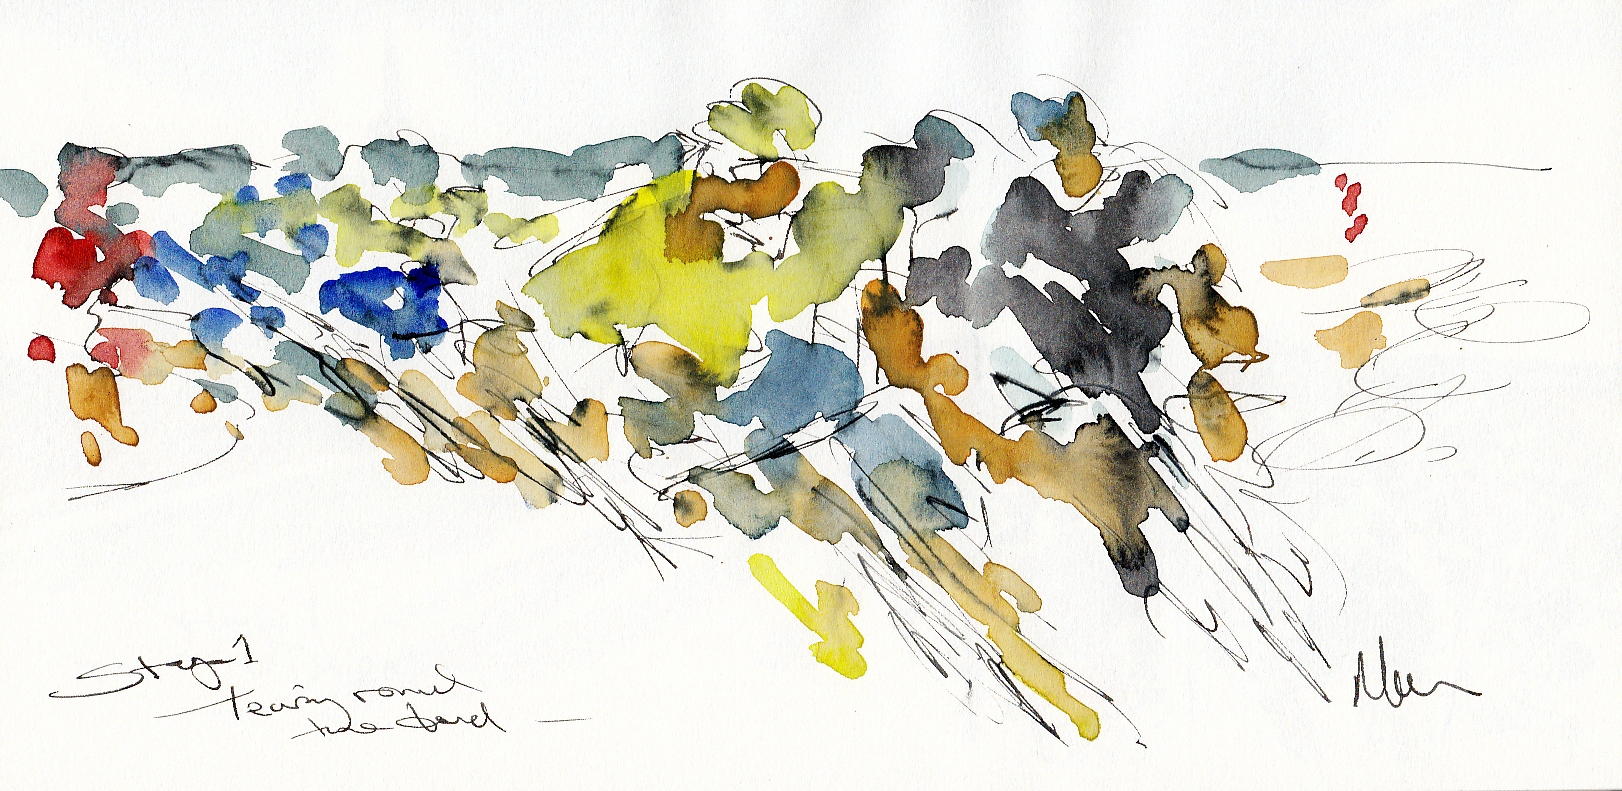 Cycling art, Tour de France, Tearing round the bend by Maxine Dodd, watercolour, pen and ink